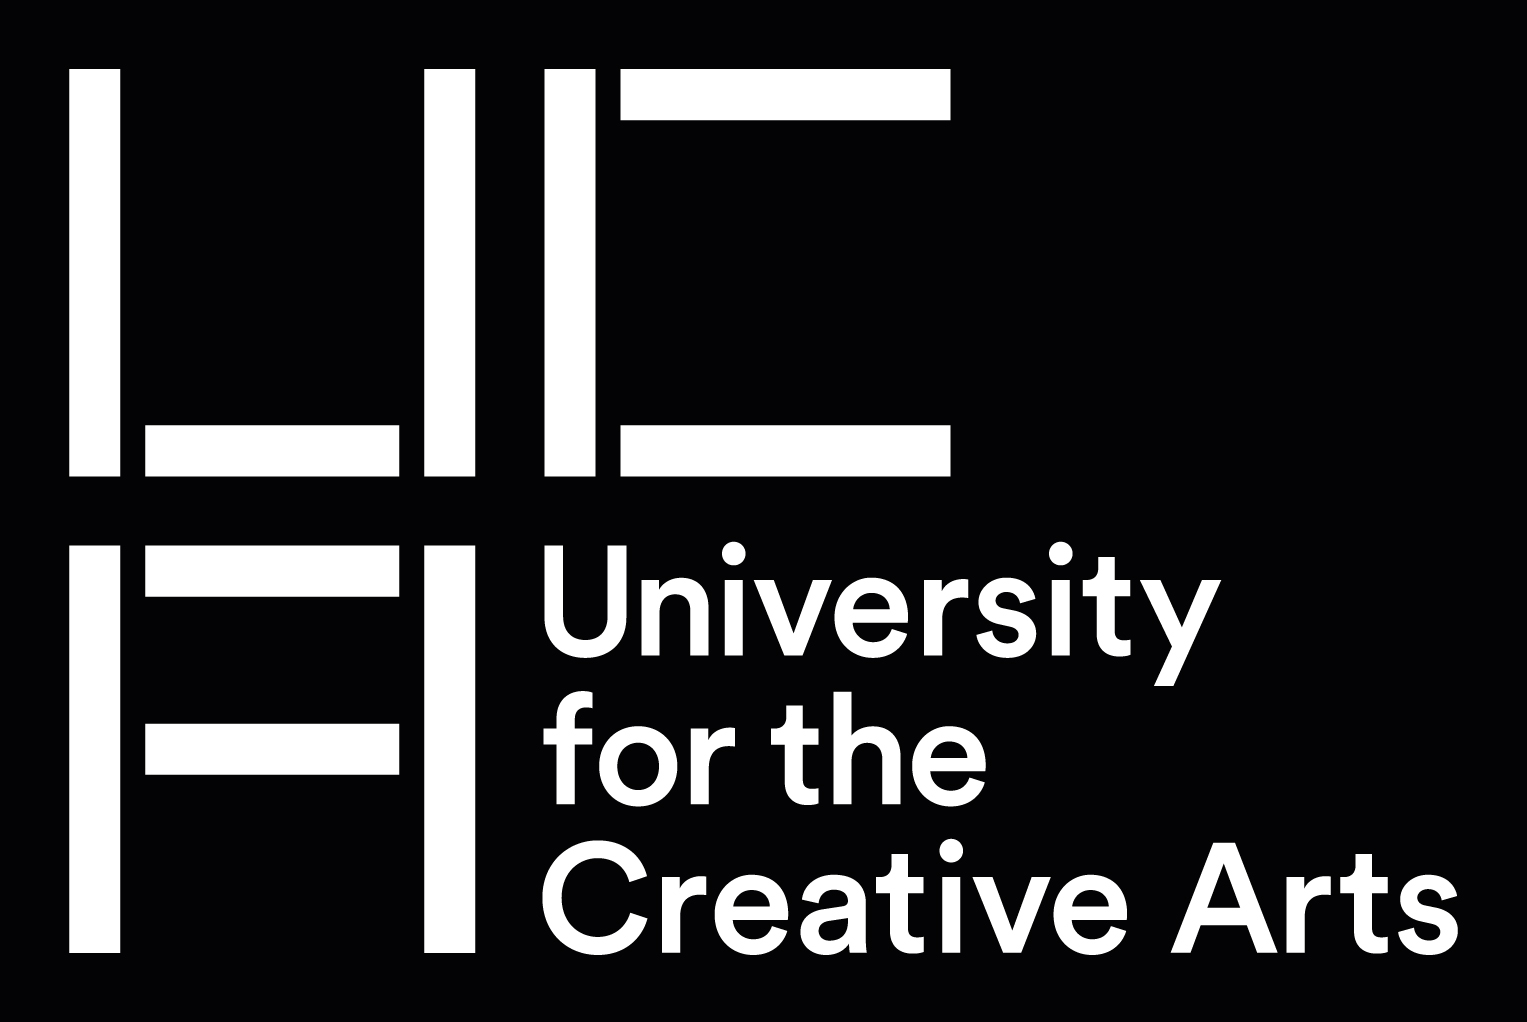 Farnham, University for the Creative Arts